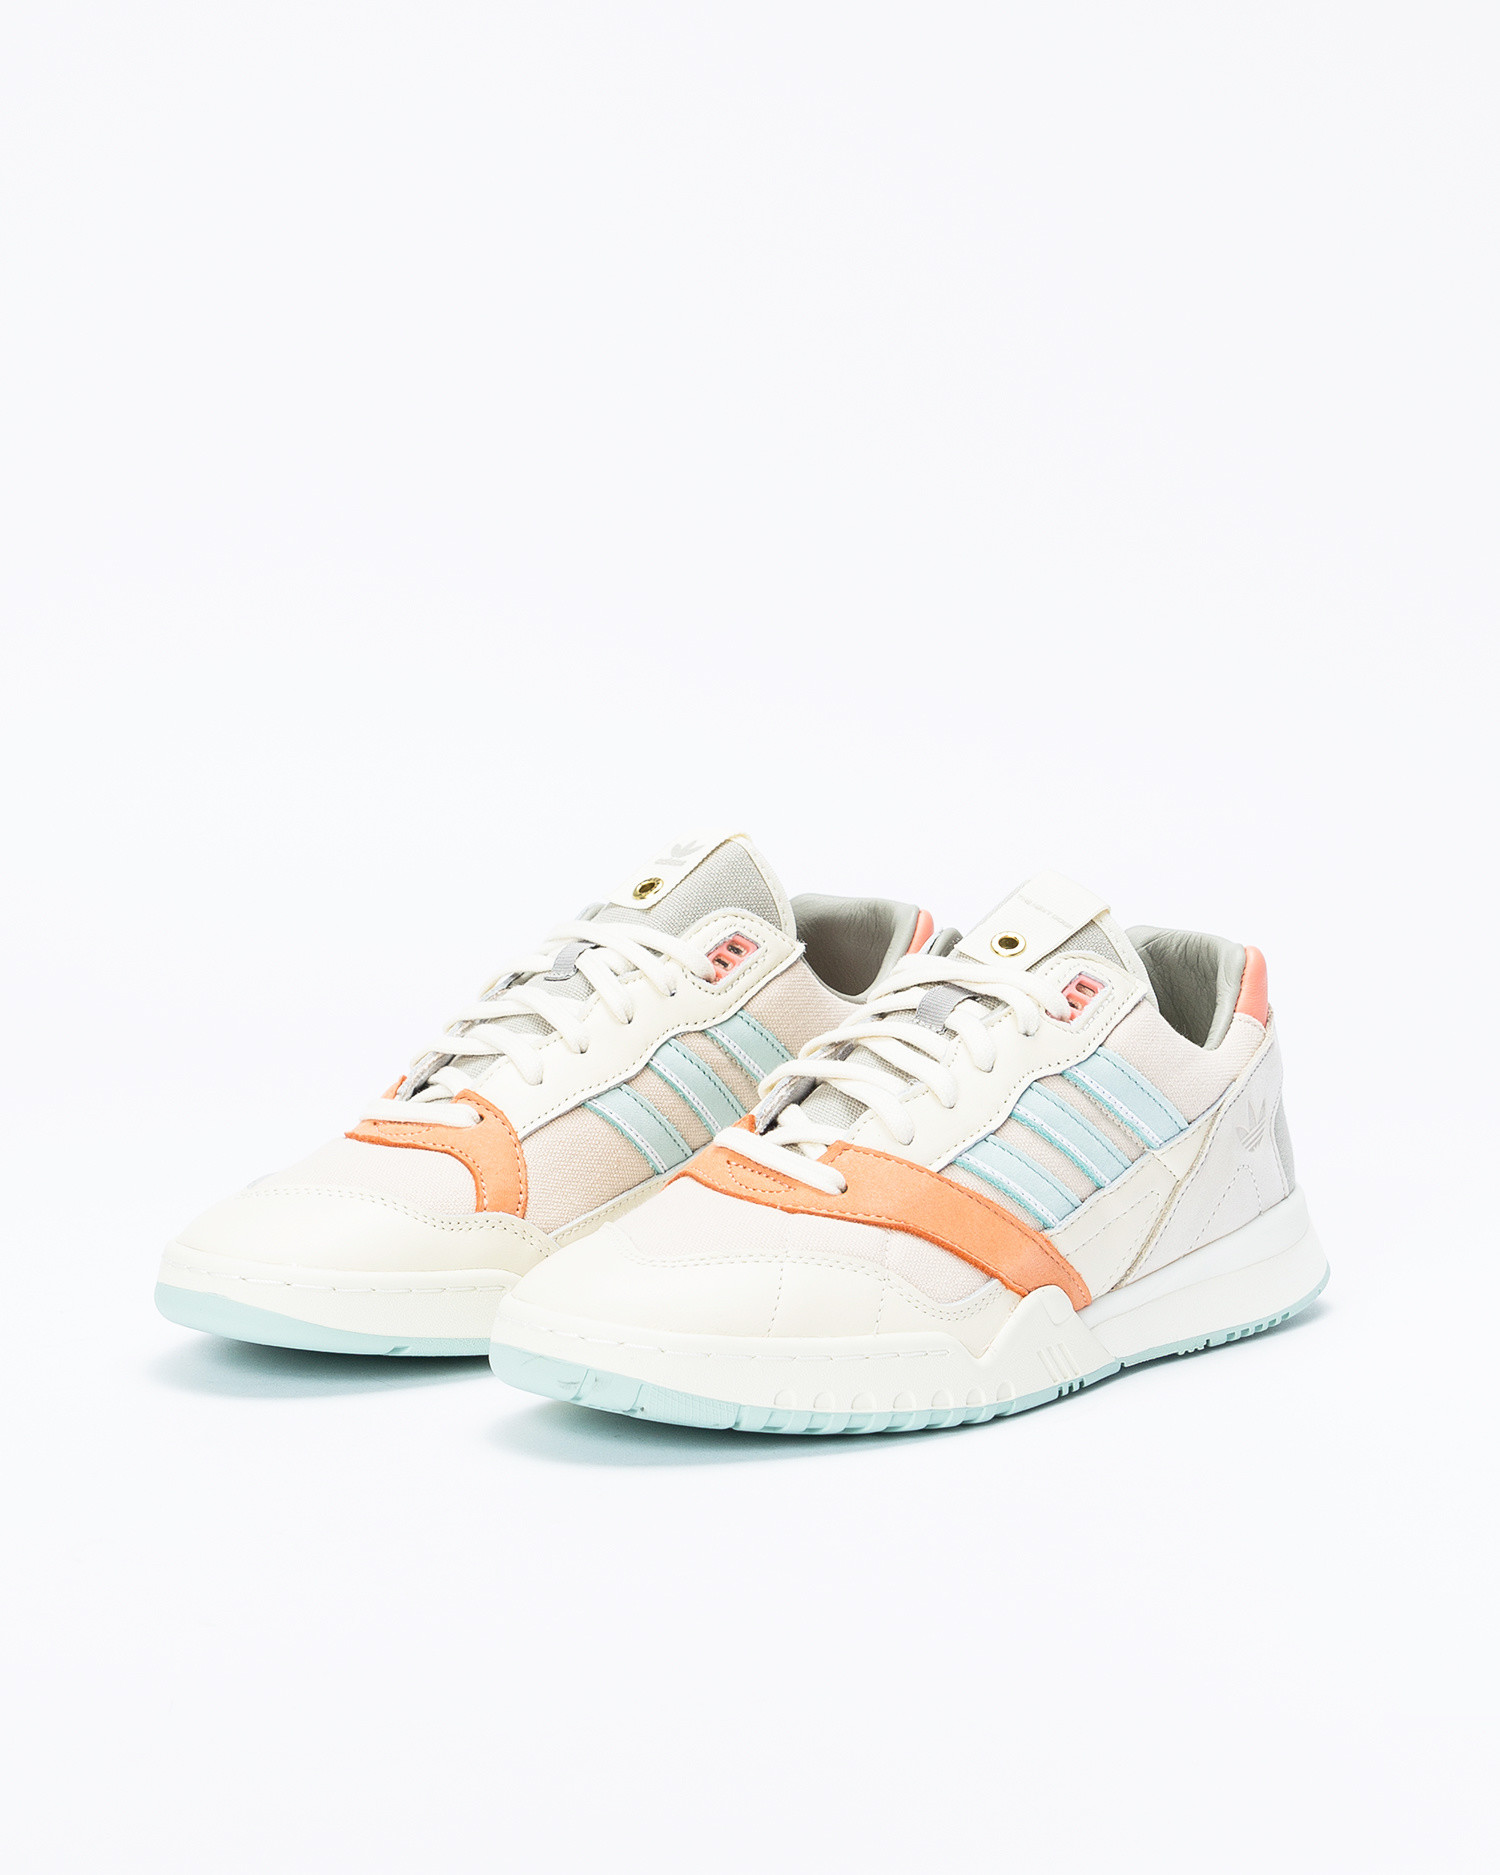 adidas Consortium x The Next Door A.R Trainer footwear white/off white/ash grey